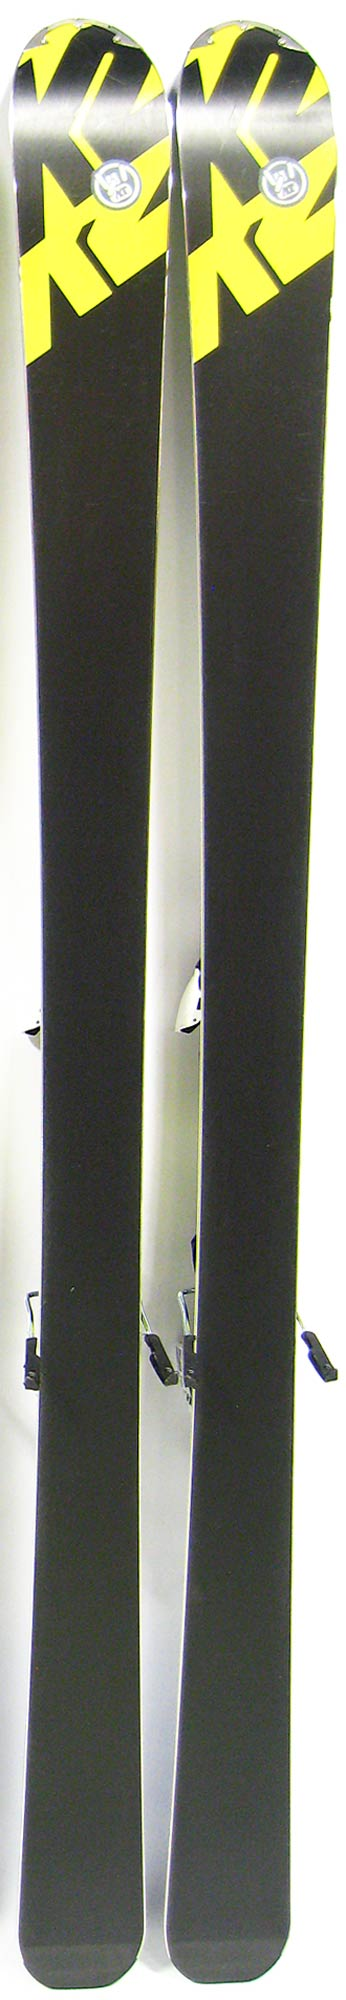 Bases of 2013 K2 Amp Aftershock Skis For Sale